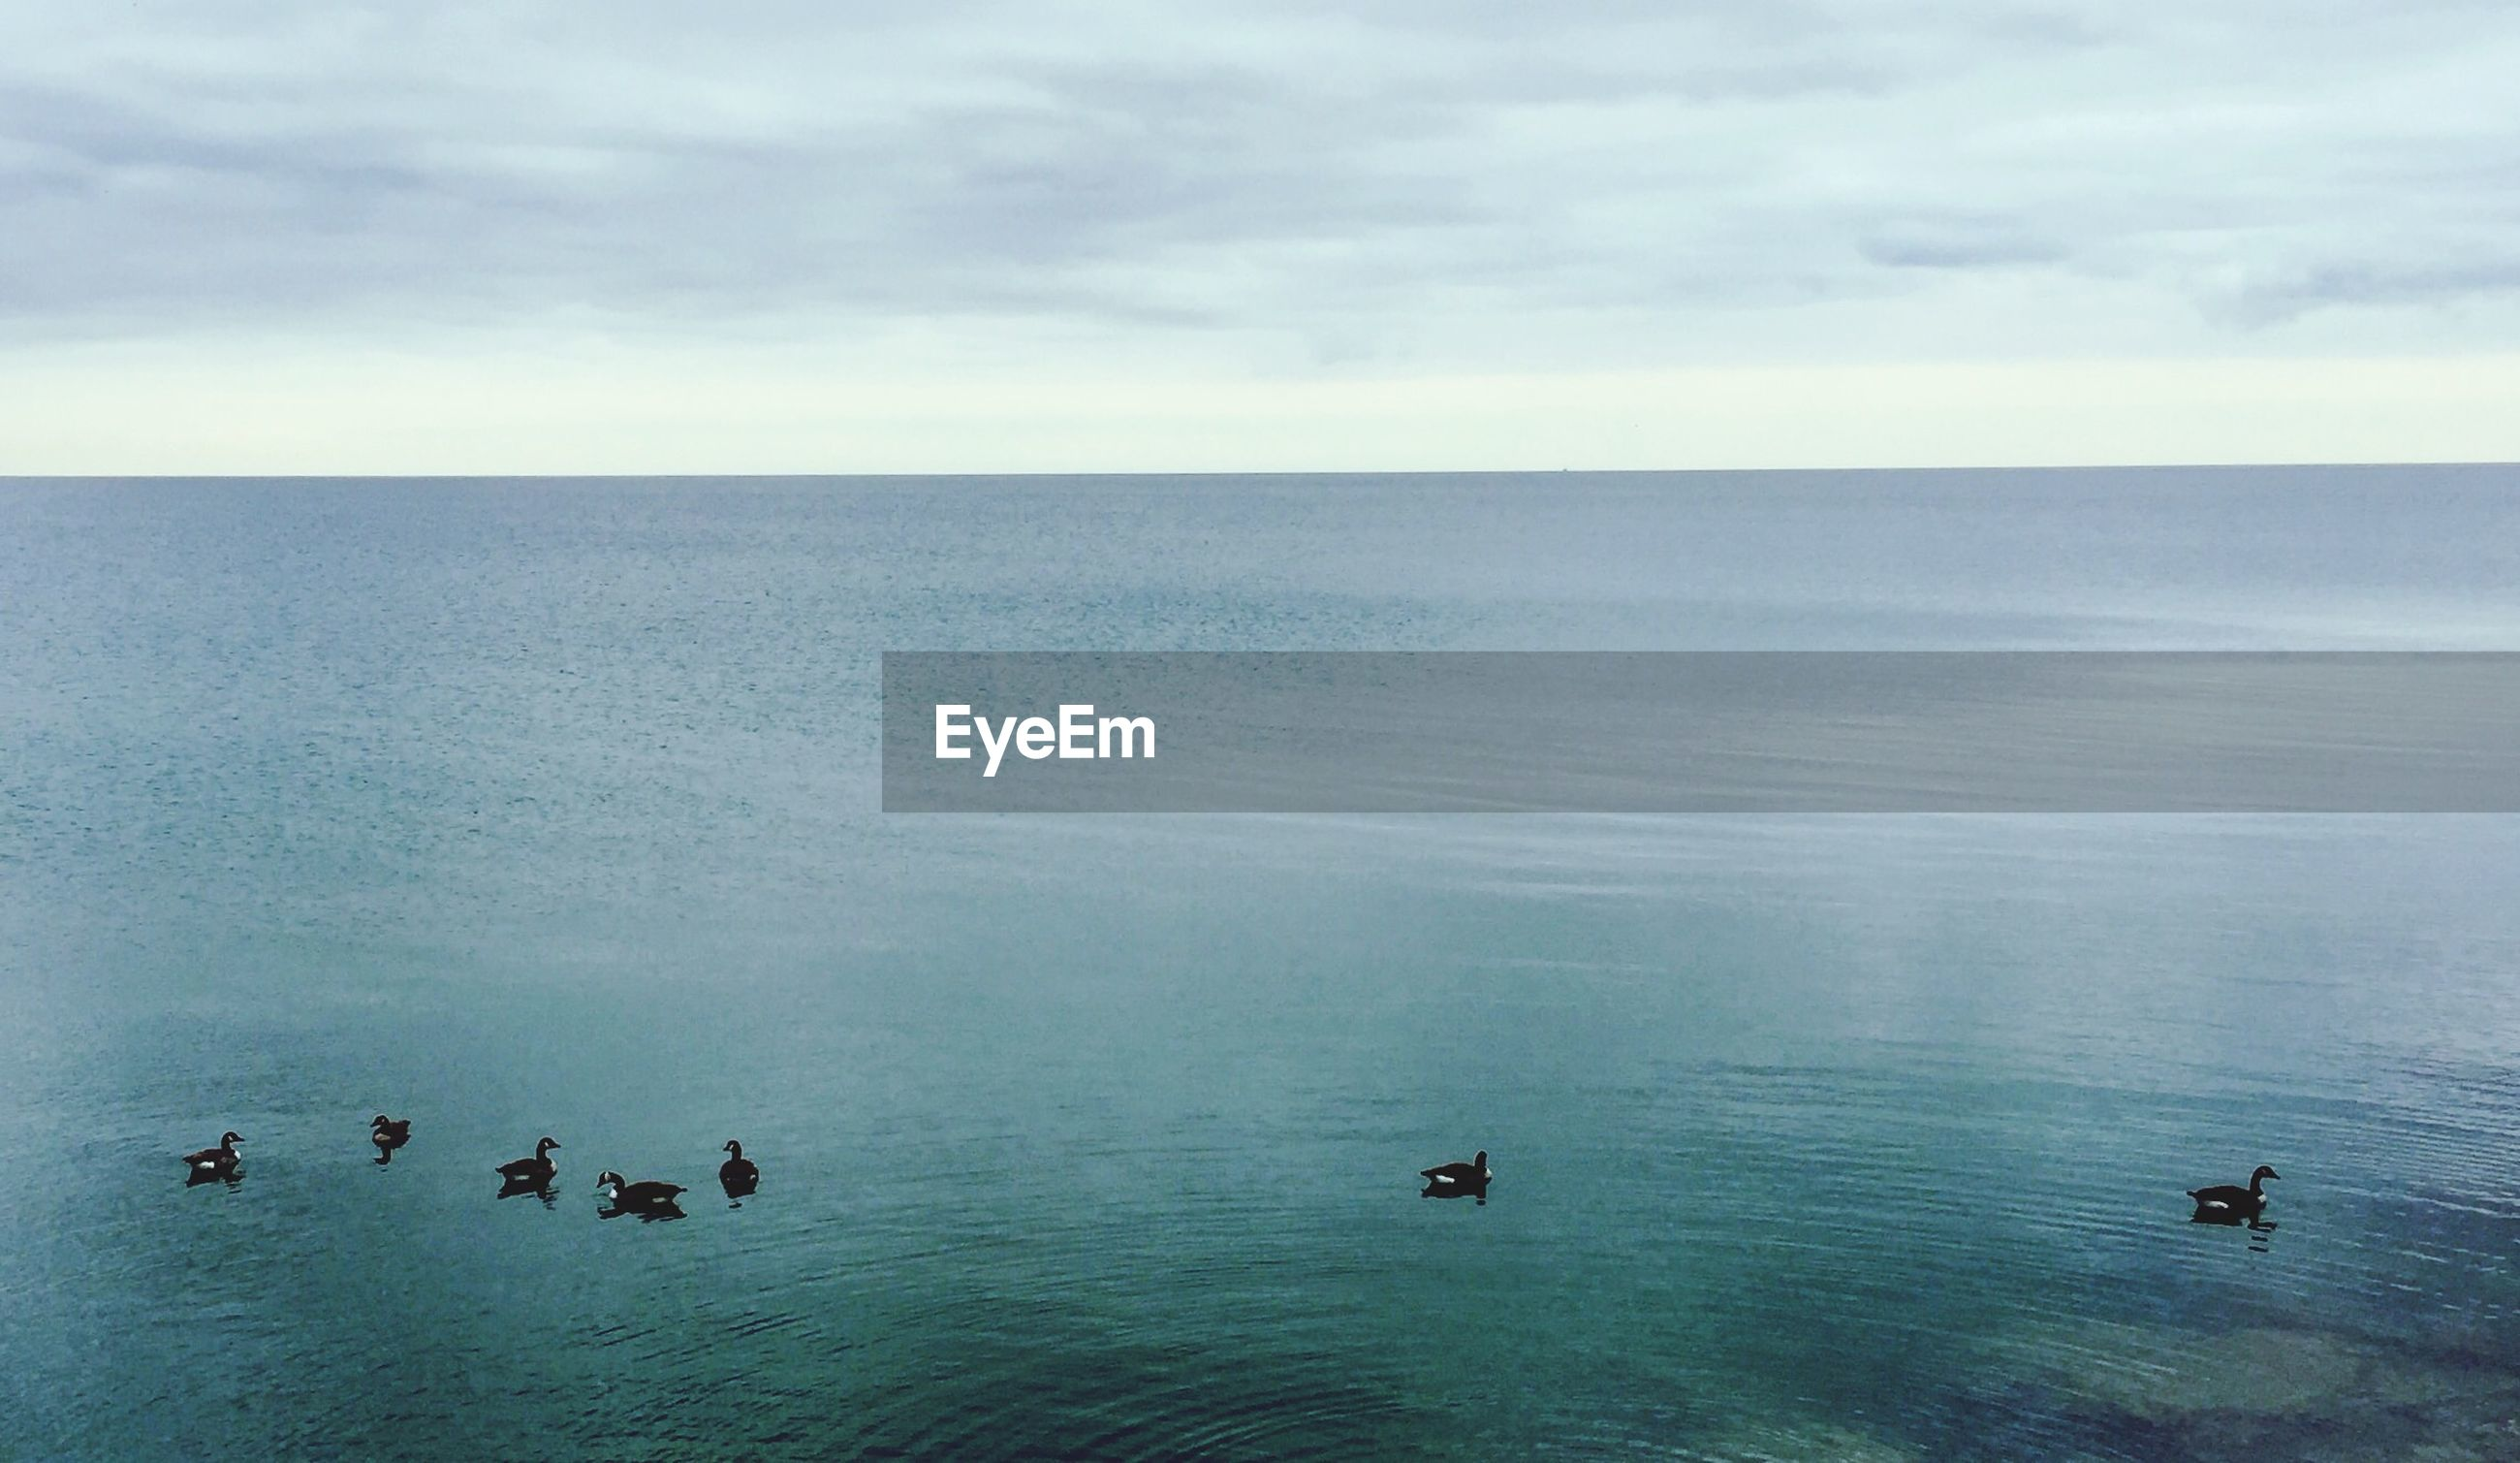 Canada geese swimming in lake against sky